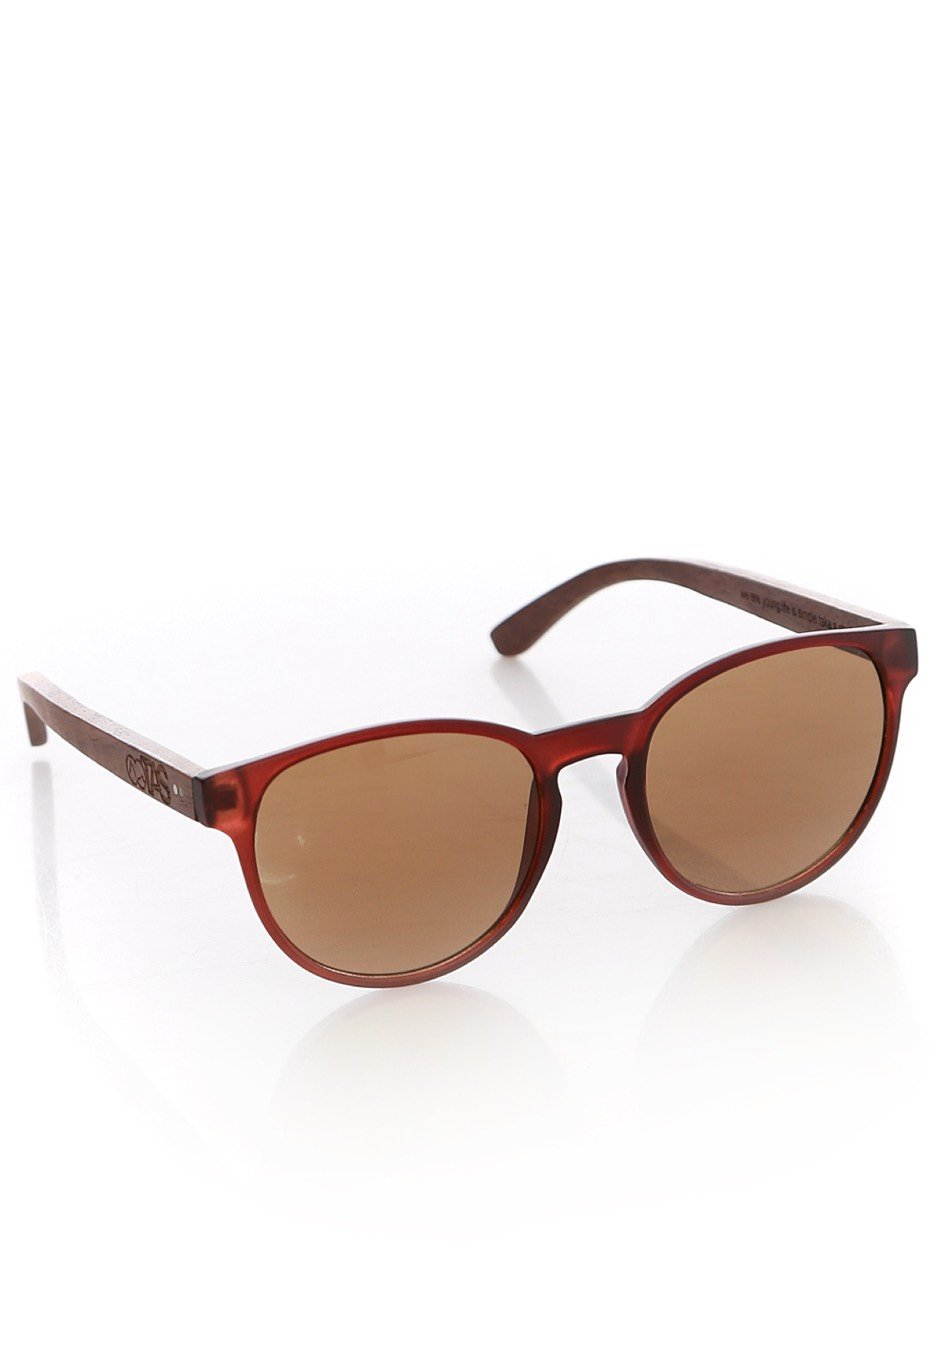 Take A Shot The Gryphon Walnut brown Lunettes de Soleil wGGEskgoe